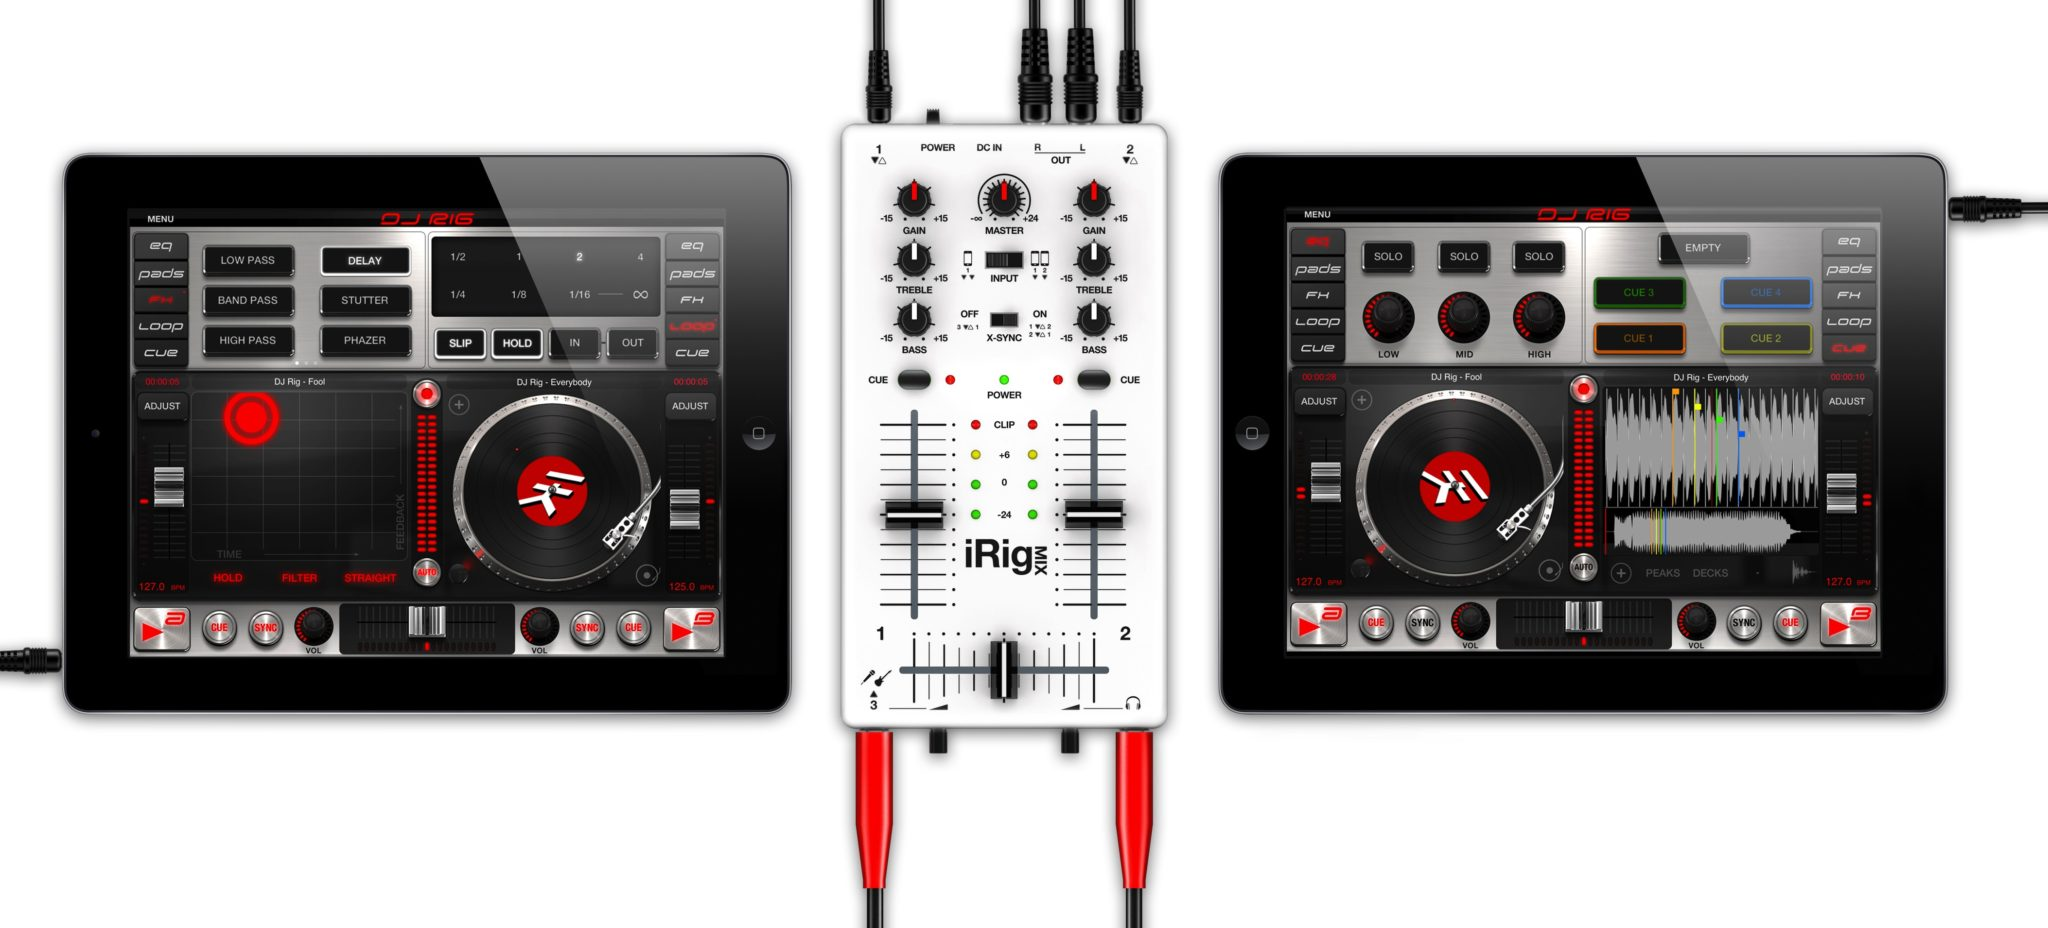 iRigMix+2iPad_top_DJRig_1.0_cue_wave